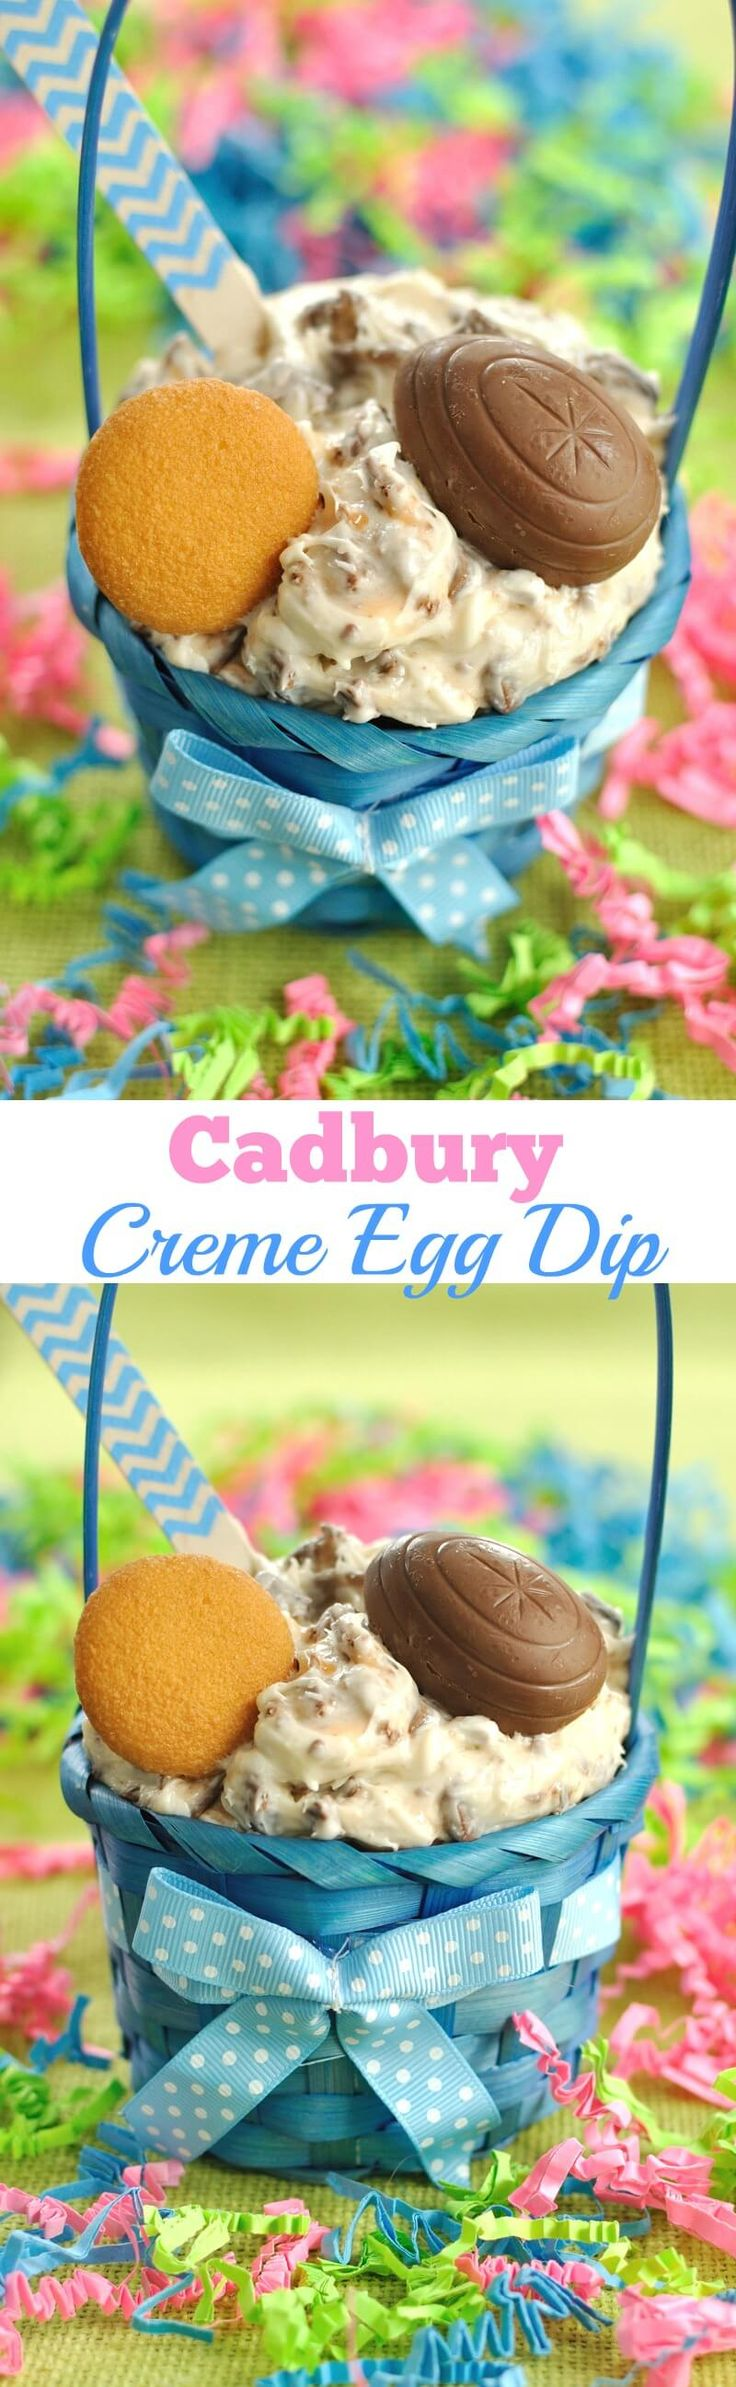 5 ingredient dessert dip recipe for Easter made with Cadbury Creme Eggs. This Cadbury Creme Egg Dip will be a hit at your Easter party.